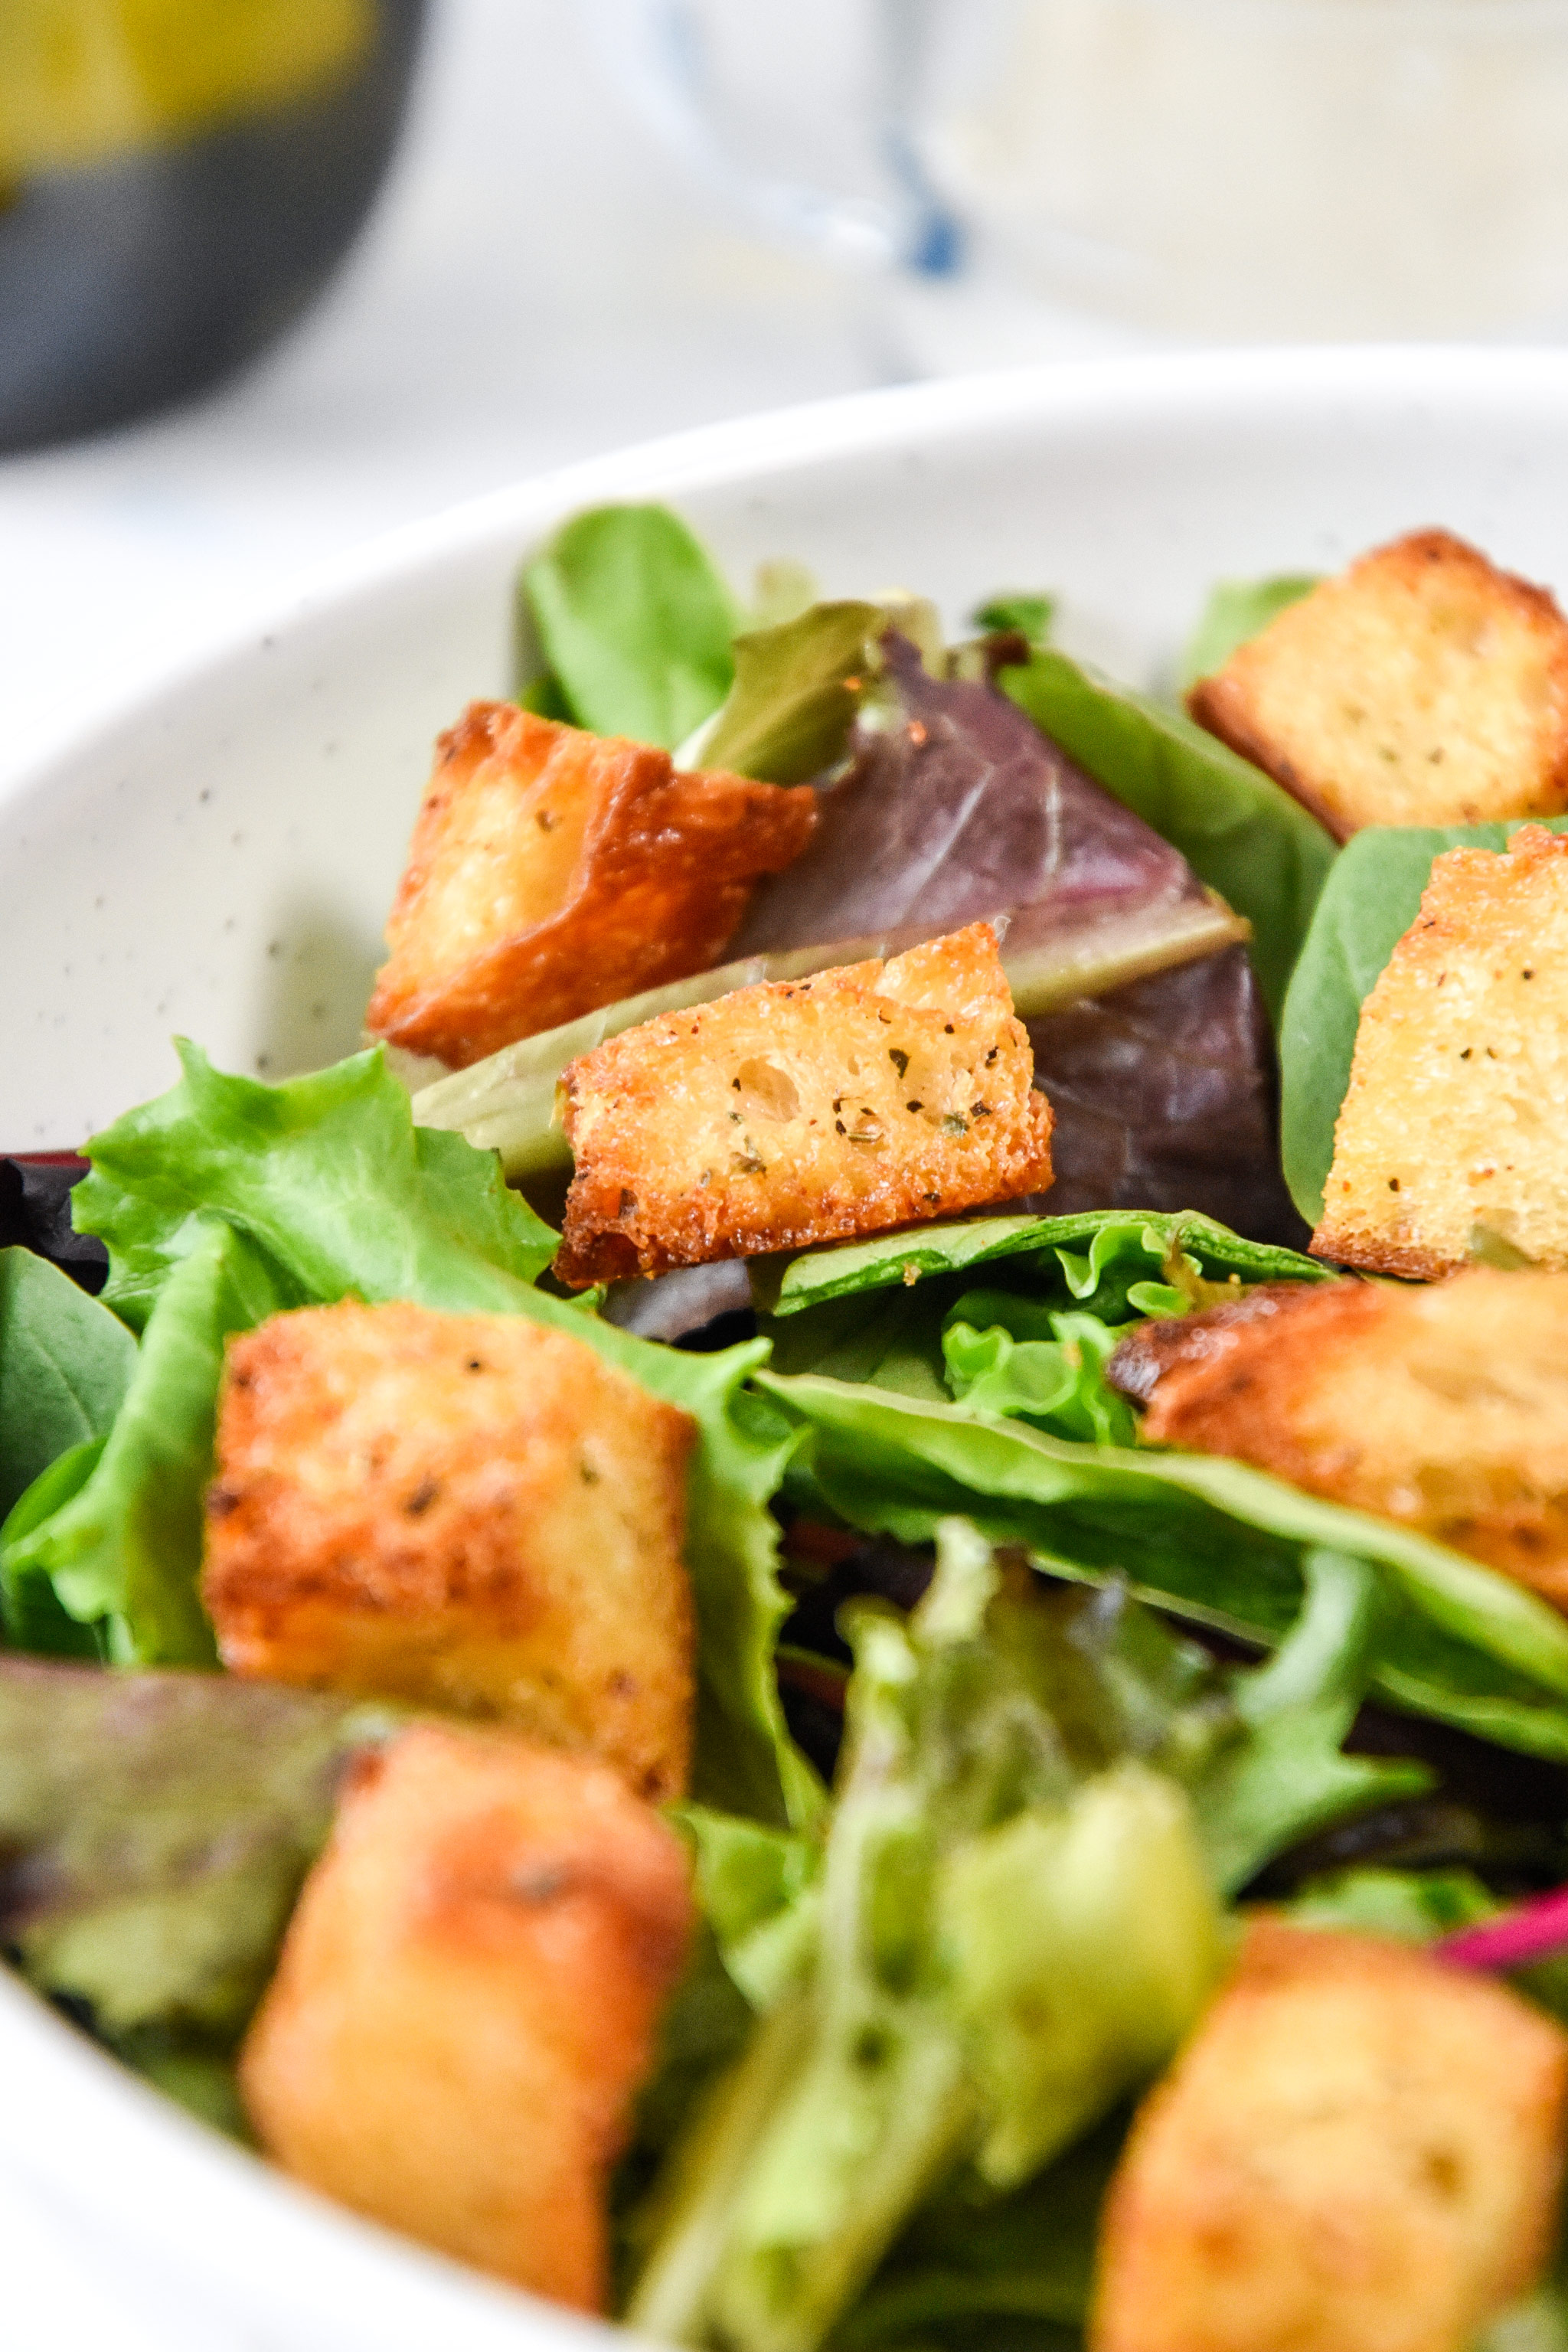 homemade croutons on a green salad in a bowl.